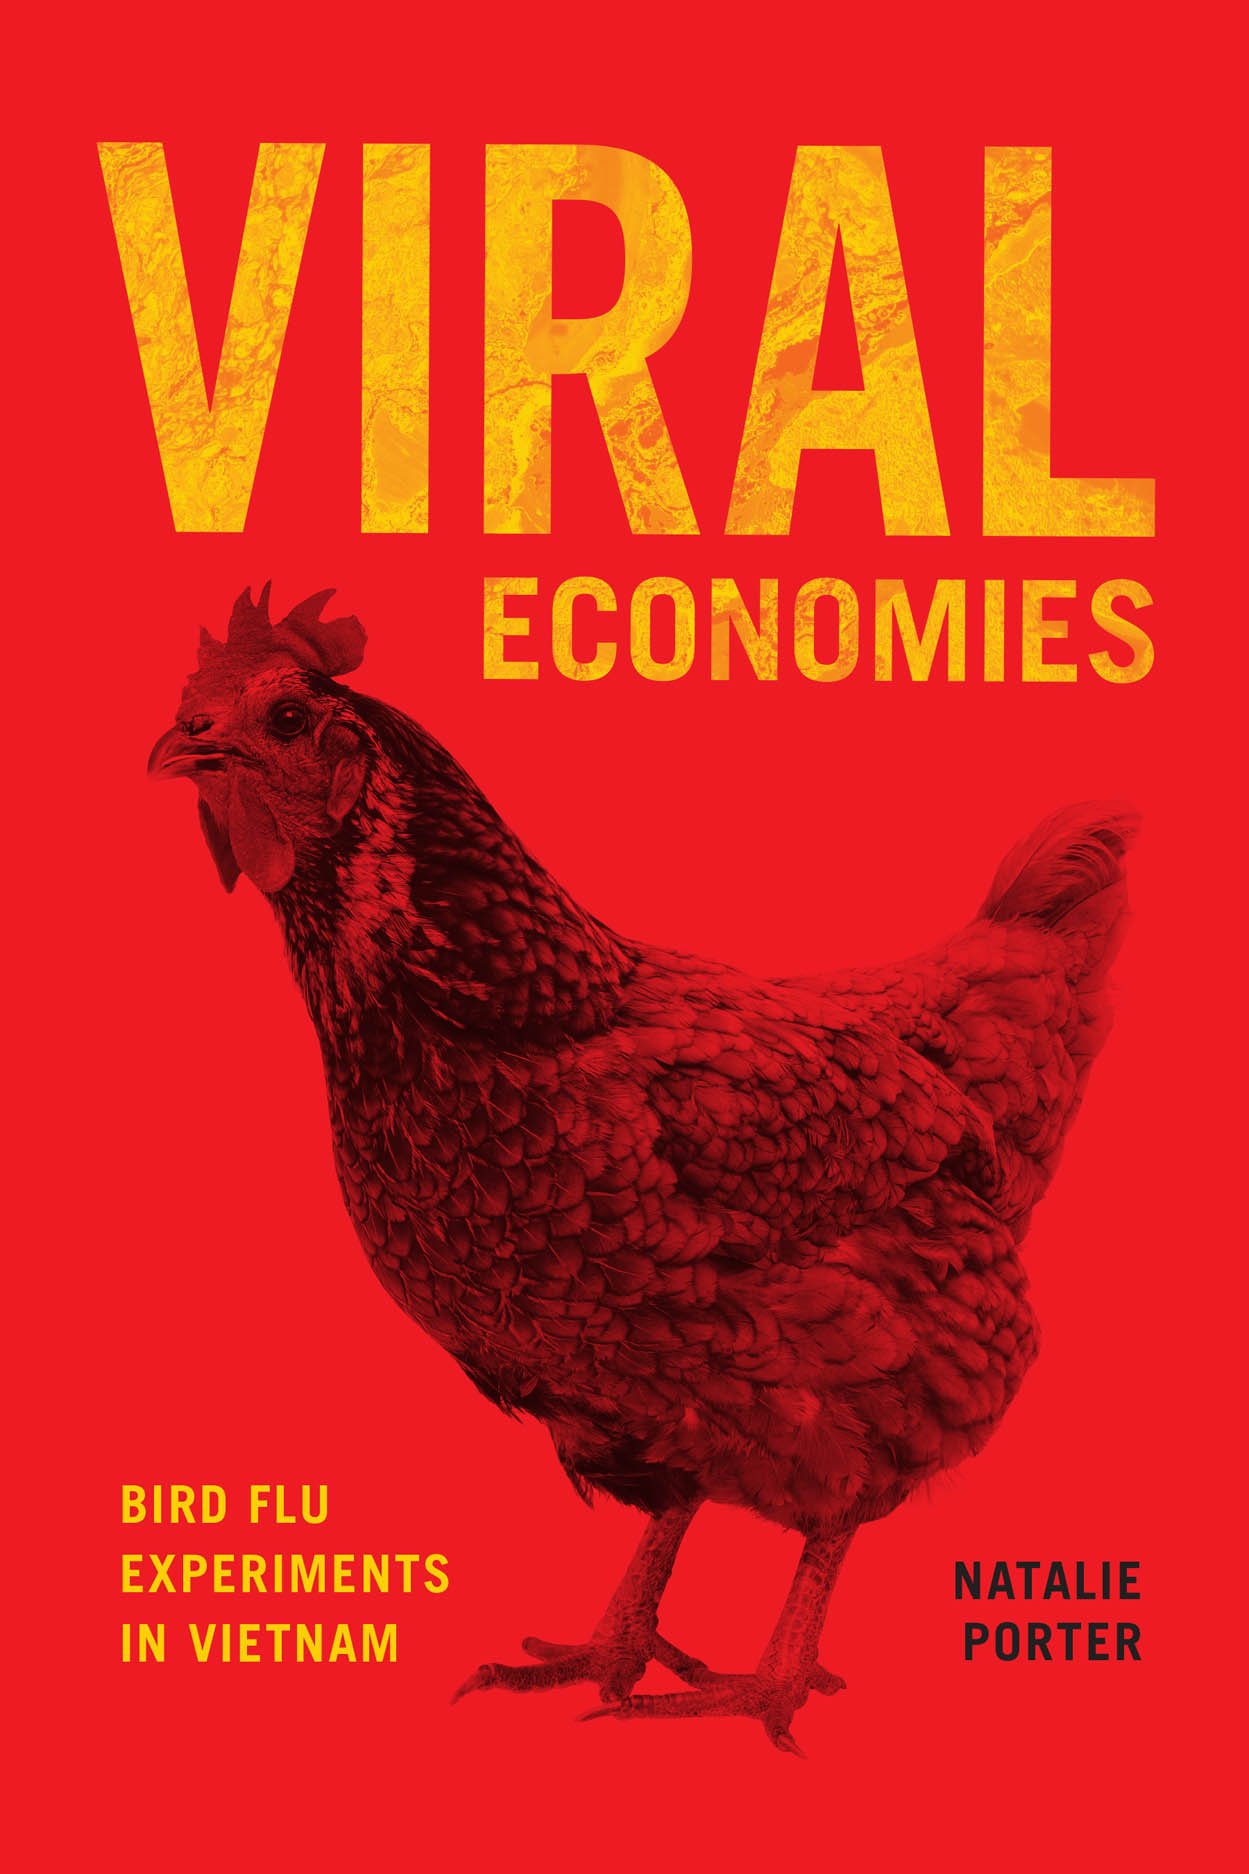 Viral Economies: Bird Flu Experiments in Vietnam